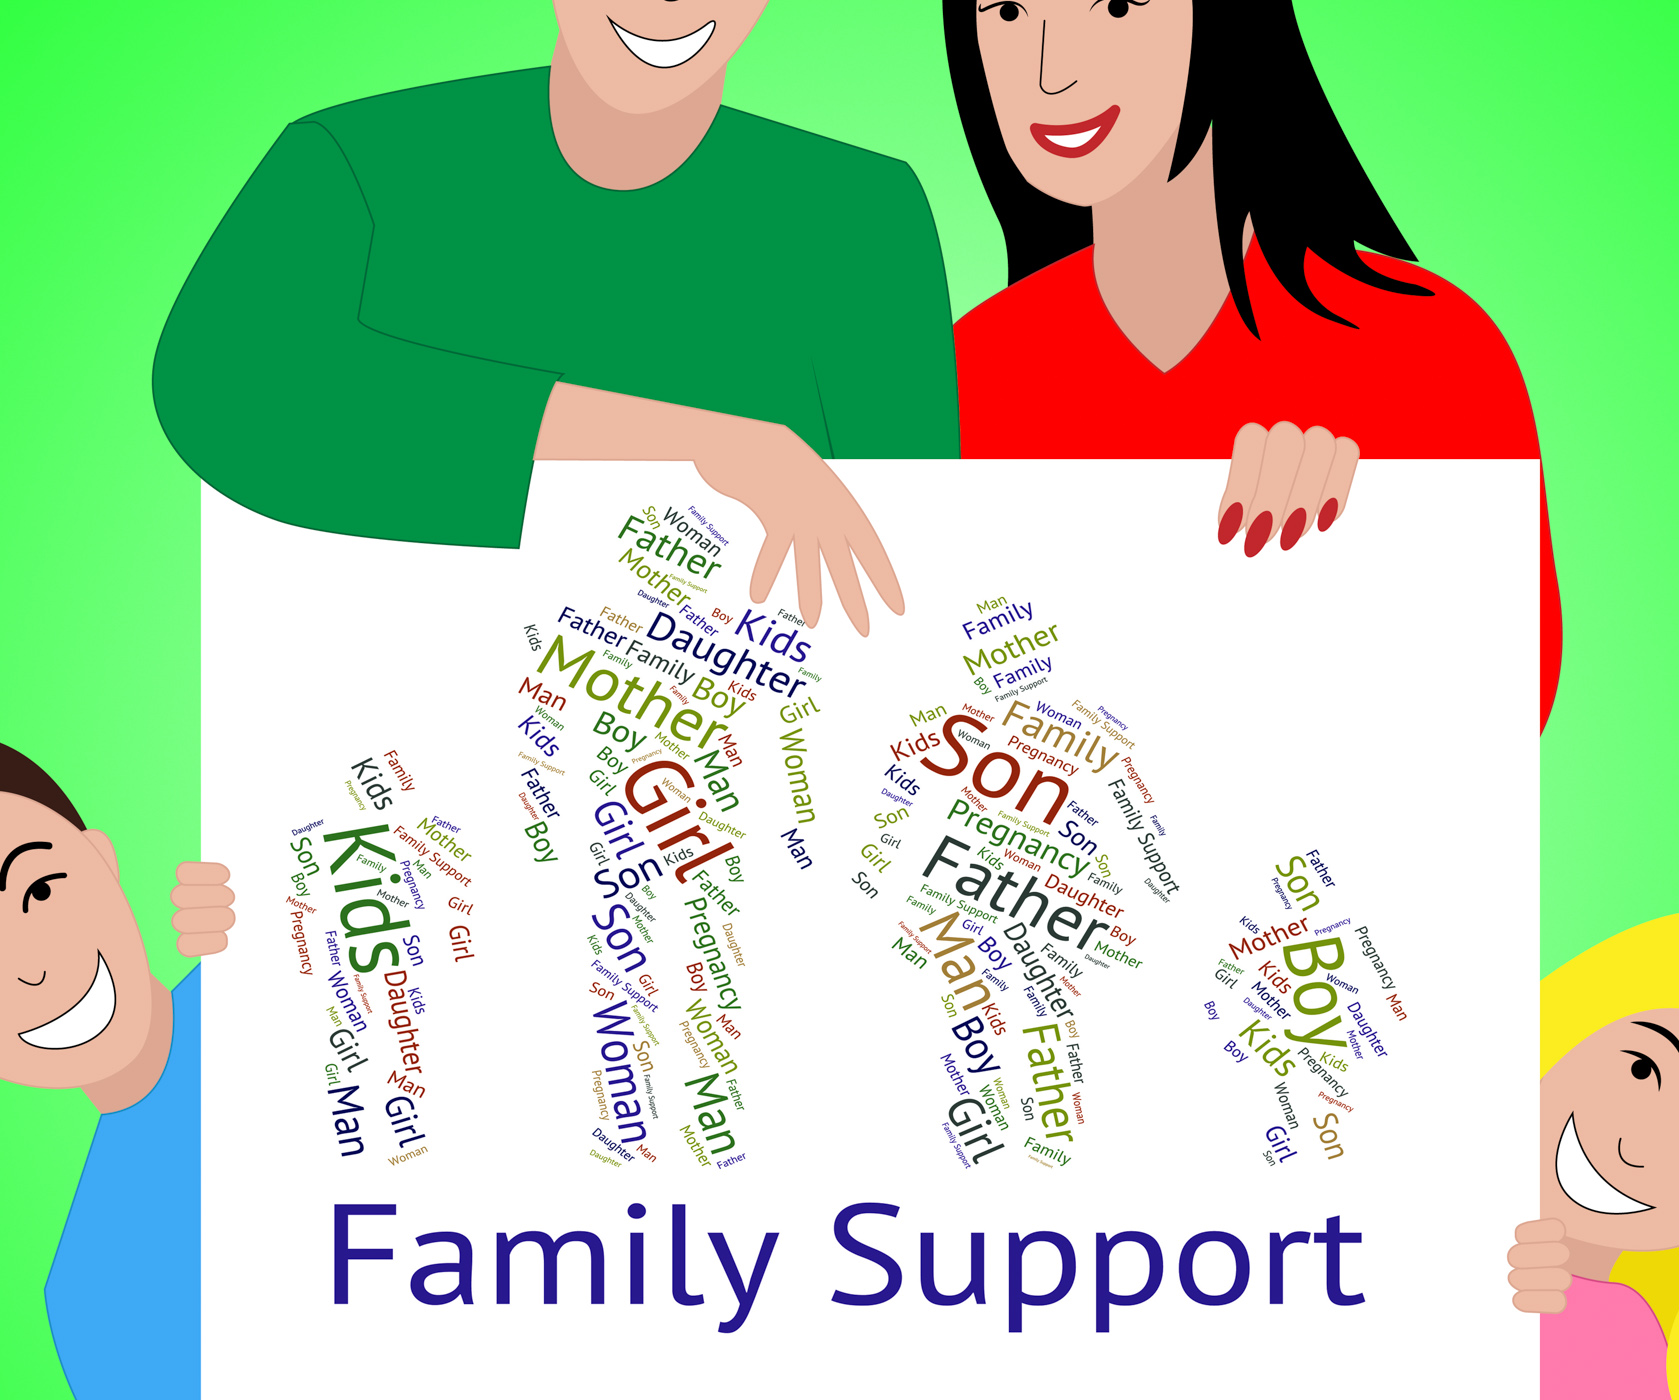 Family support represents blood relation and advice photo